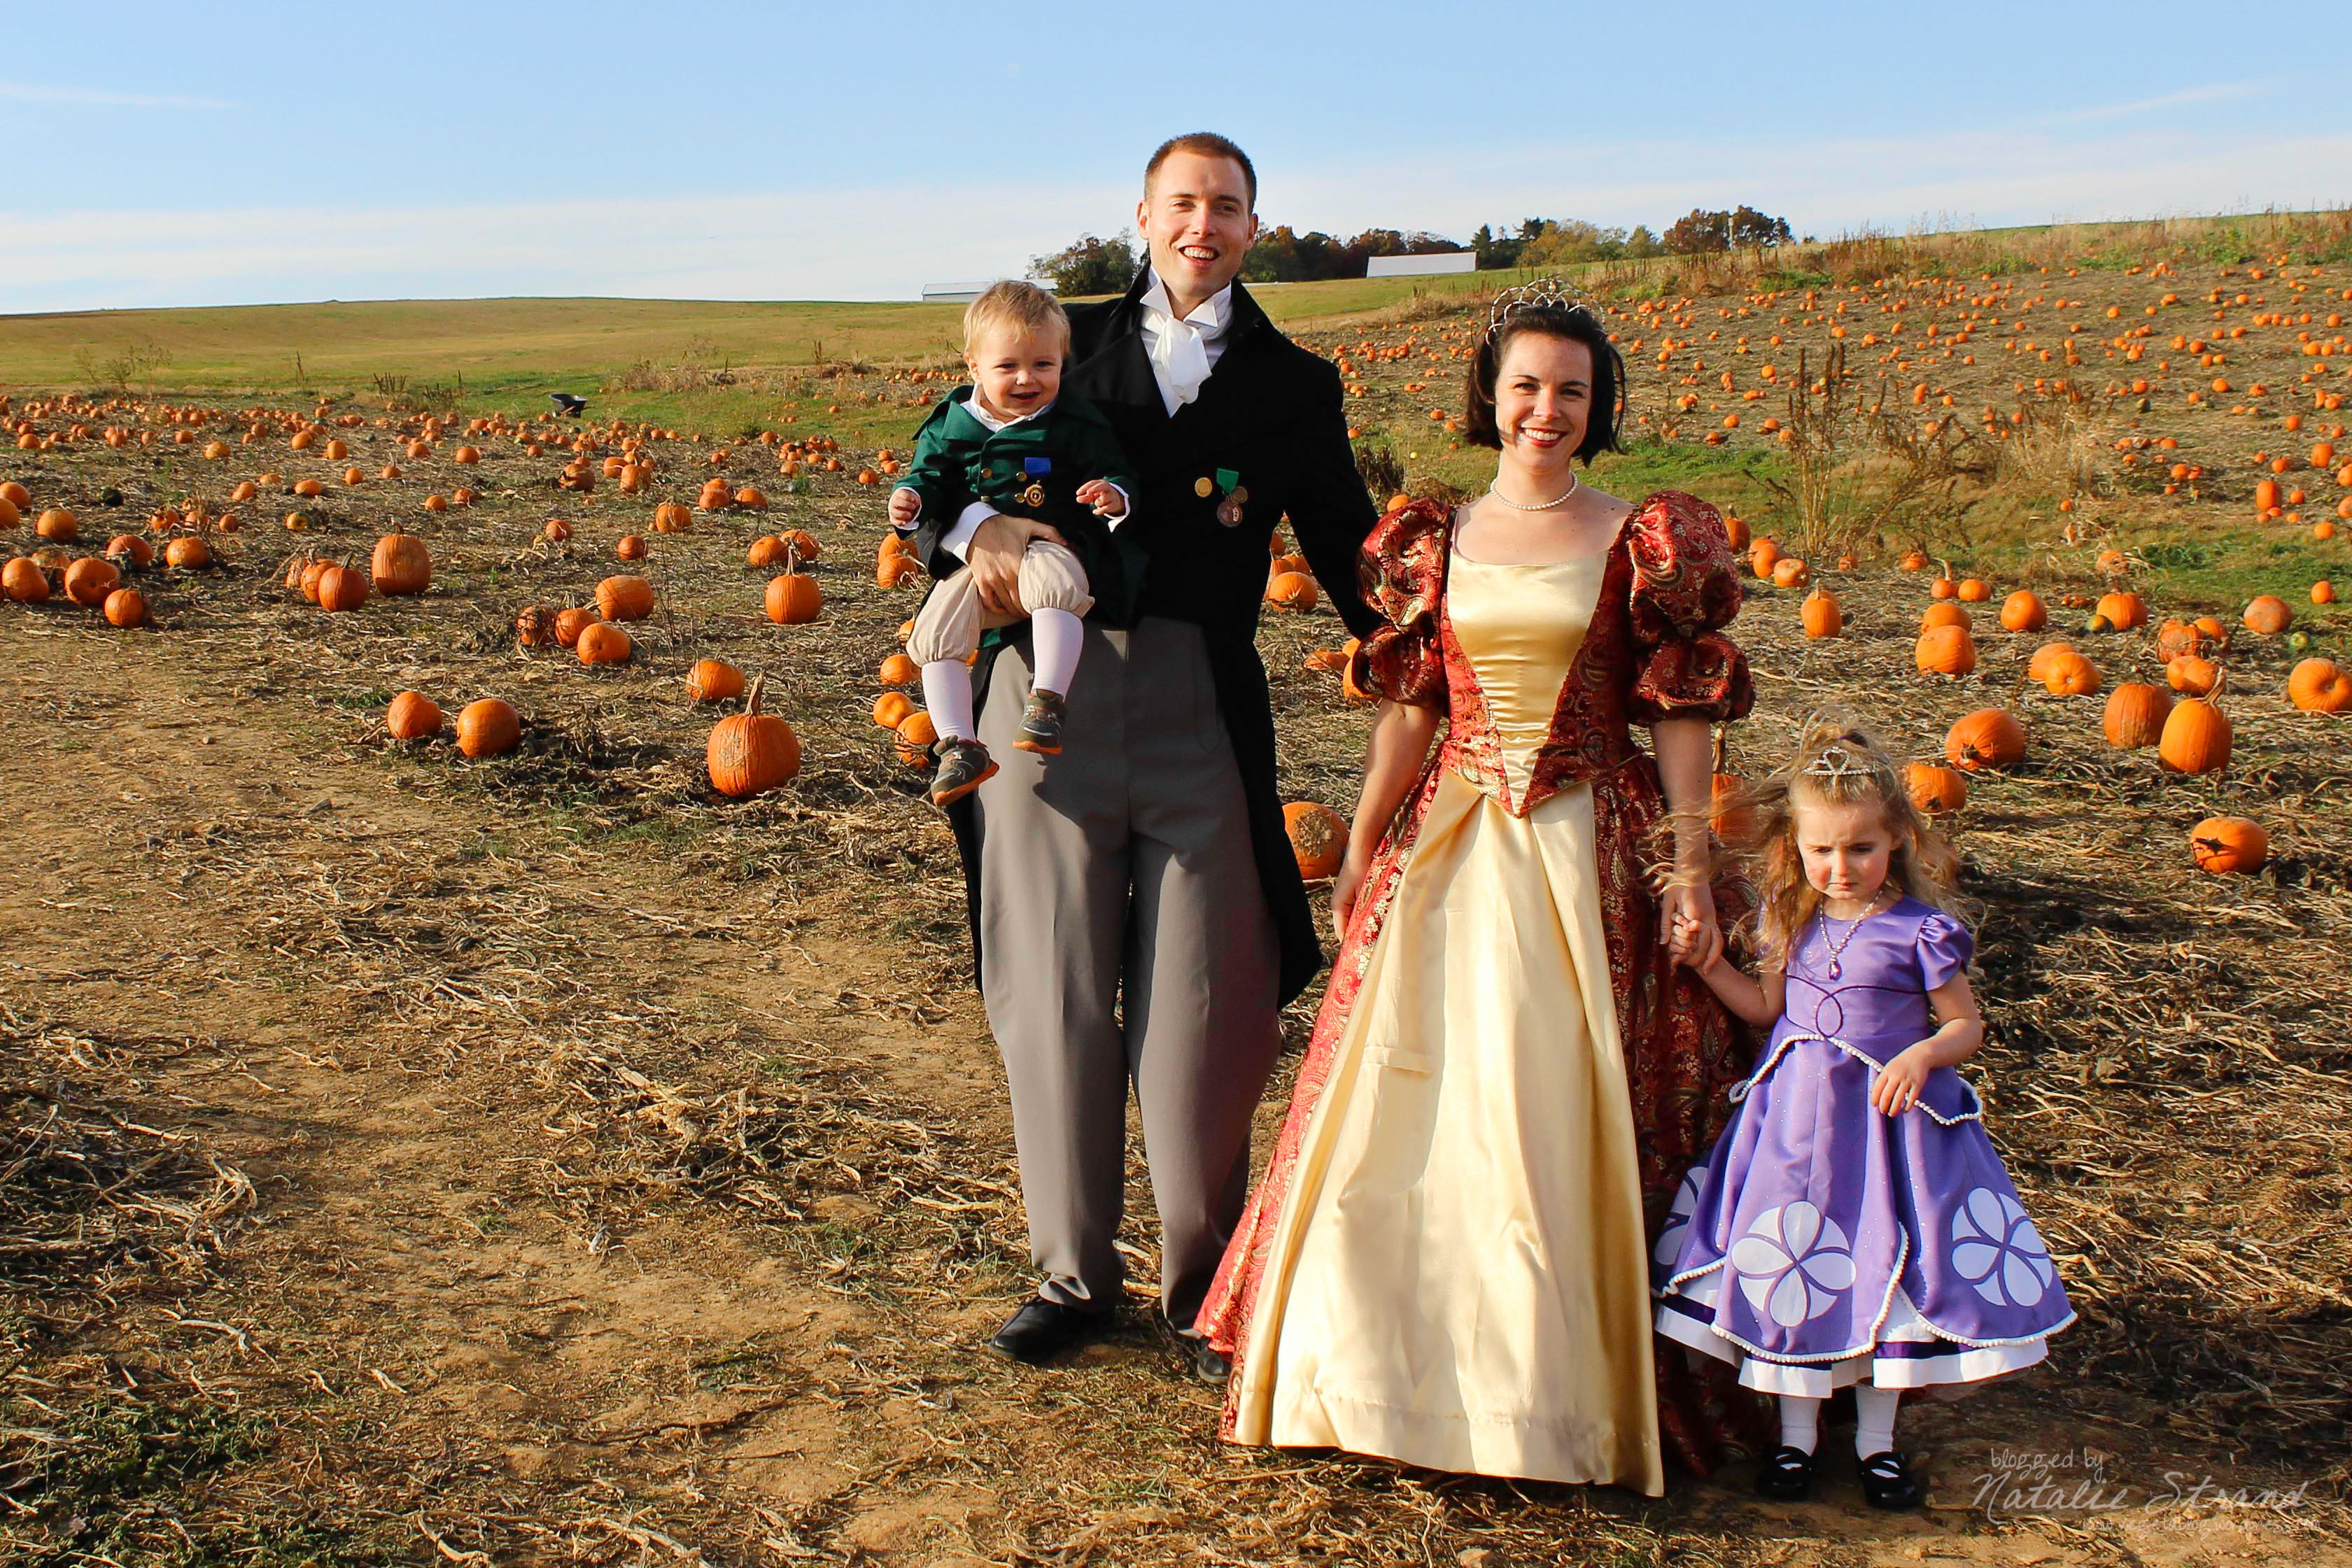 costumes 2015: the whole (royal) family | vegetablog